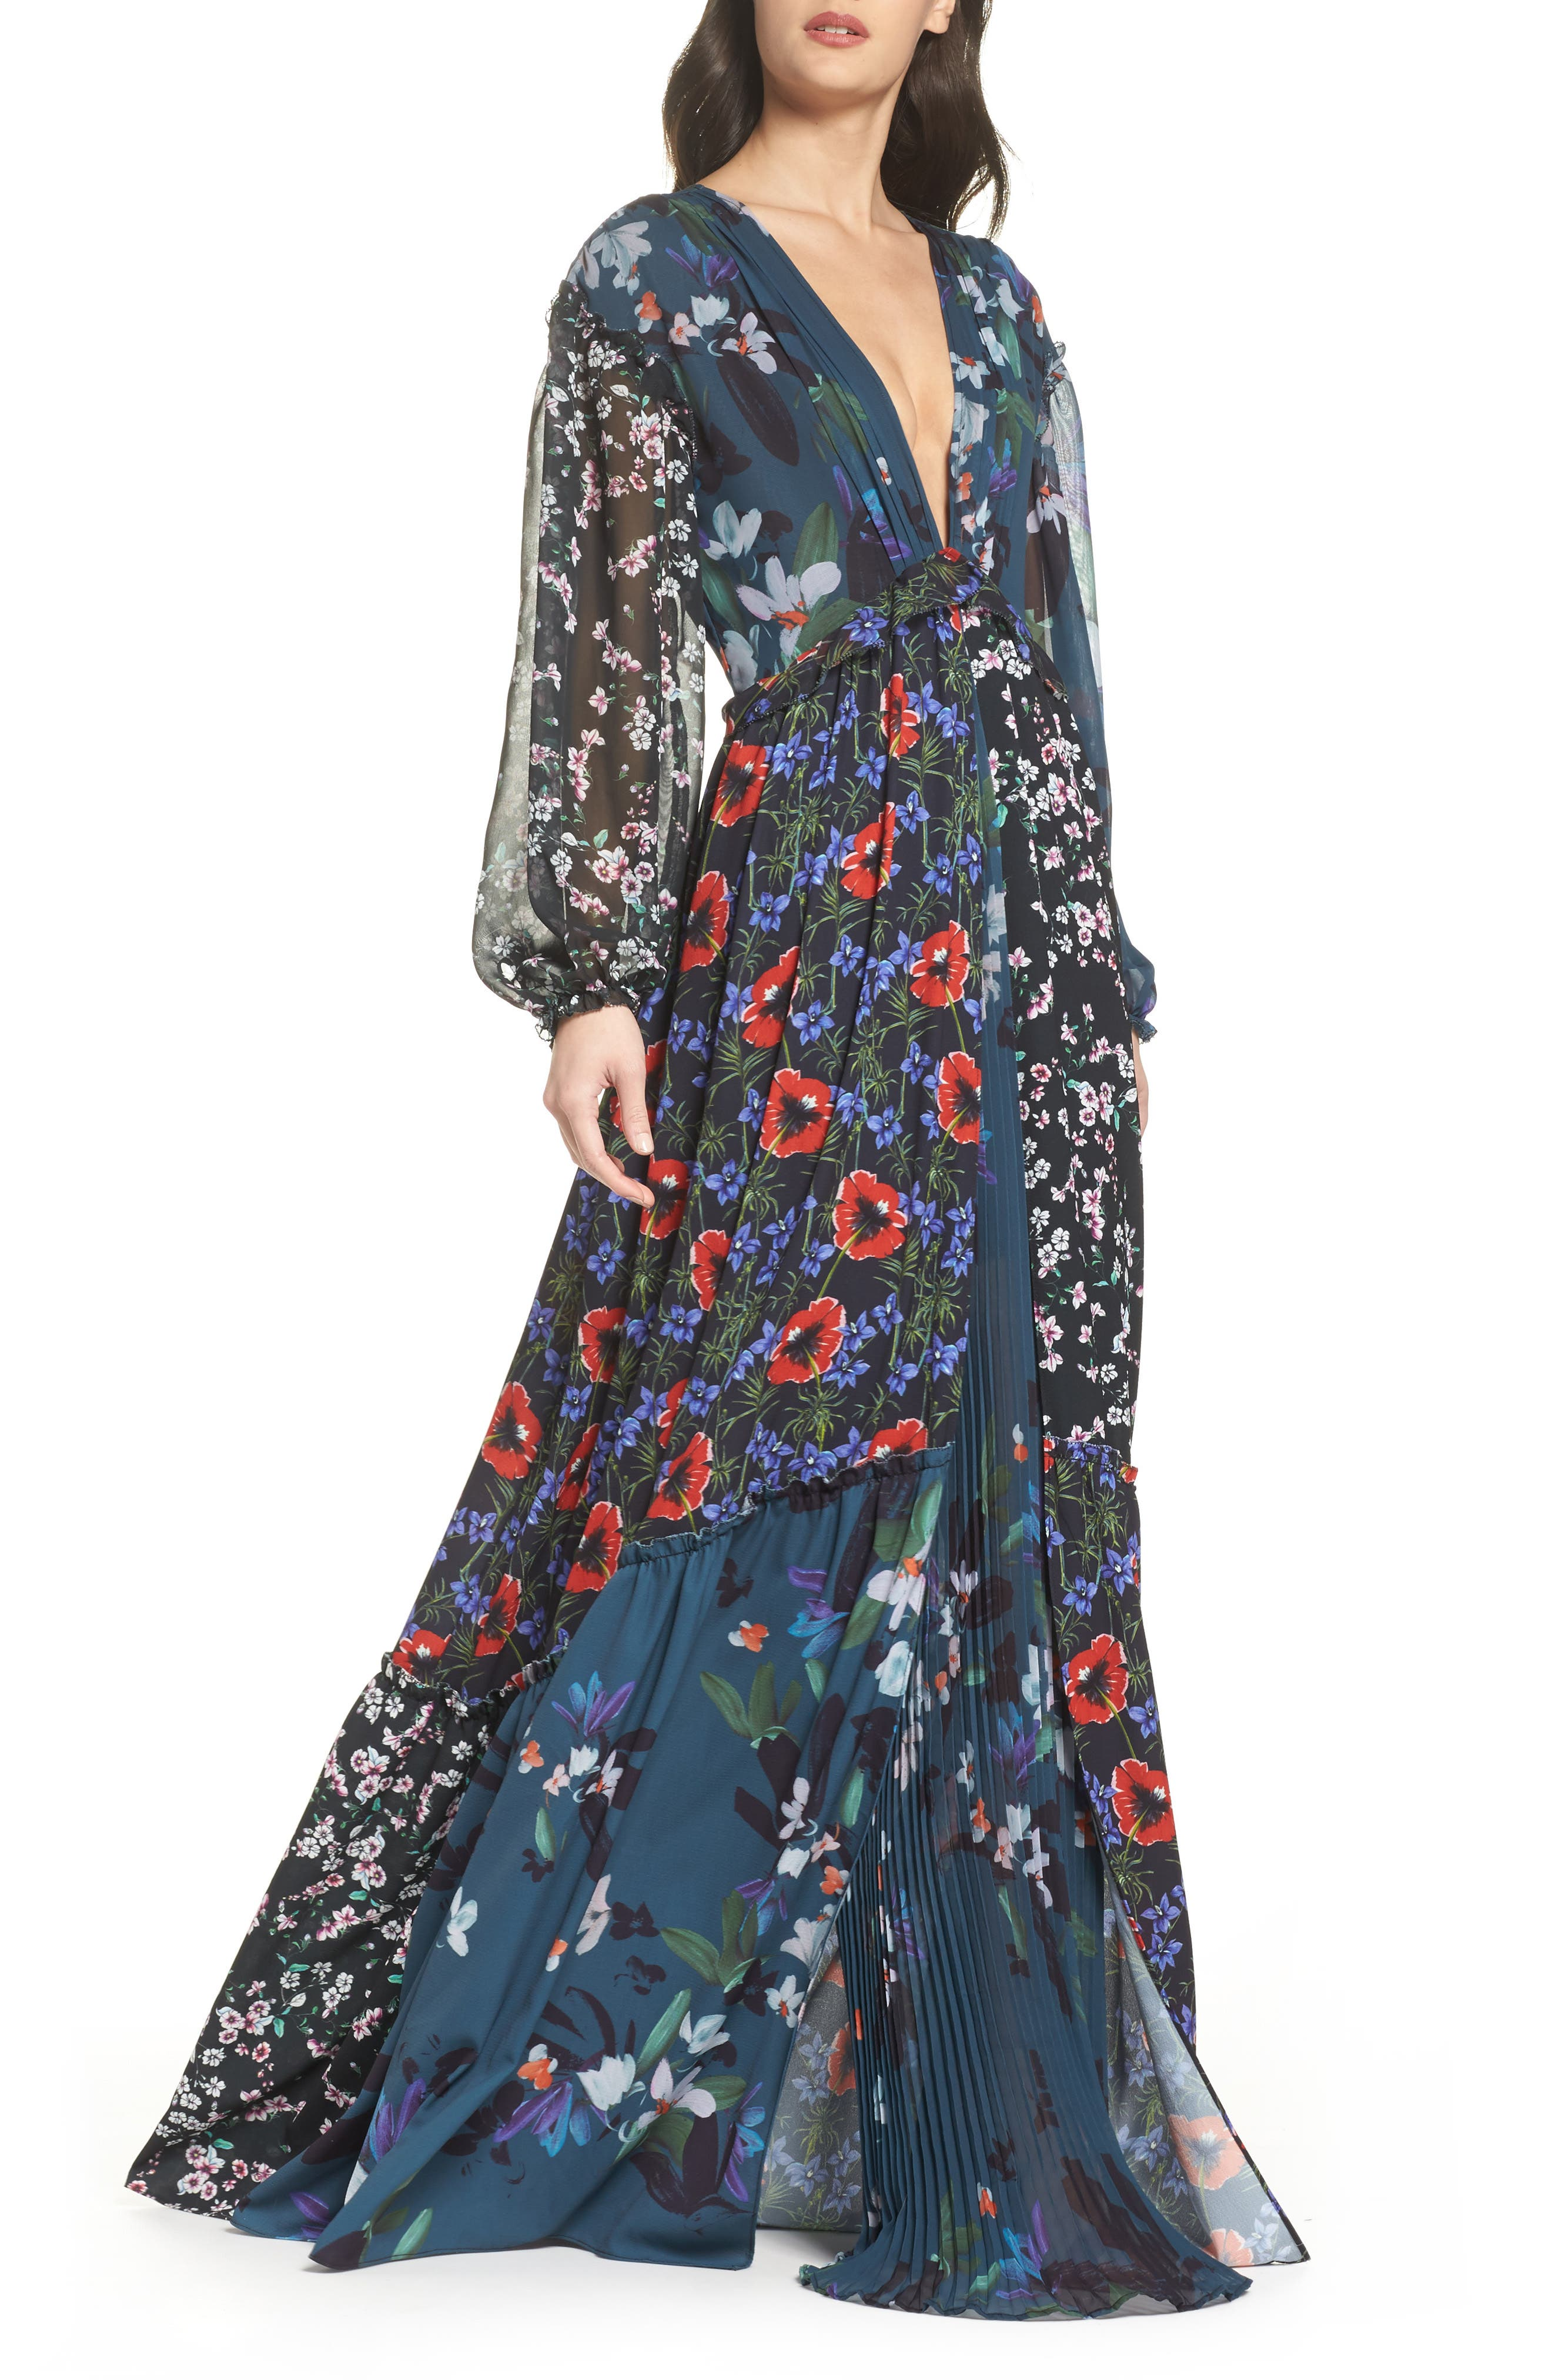 Celia Mix Floral Maxi Dress,                             Main thumbnail 1, color,                             Deep Teal Multi